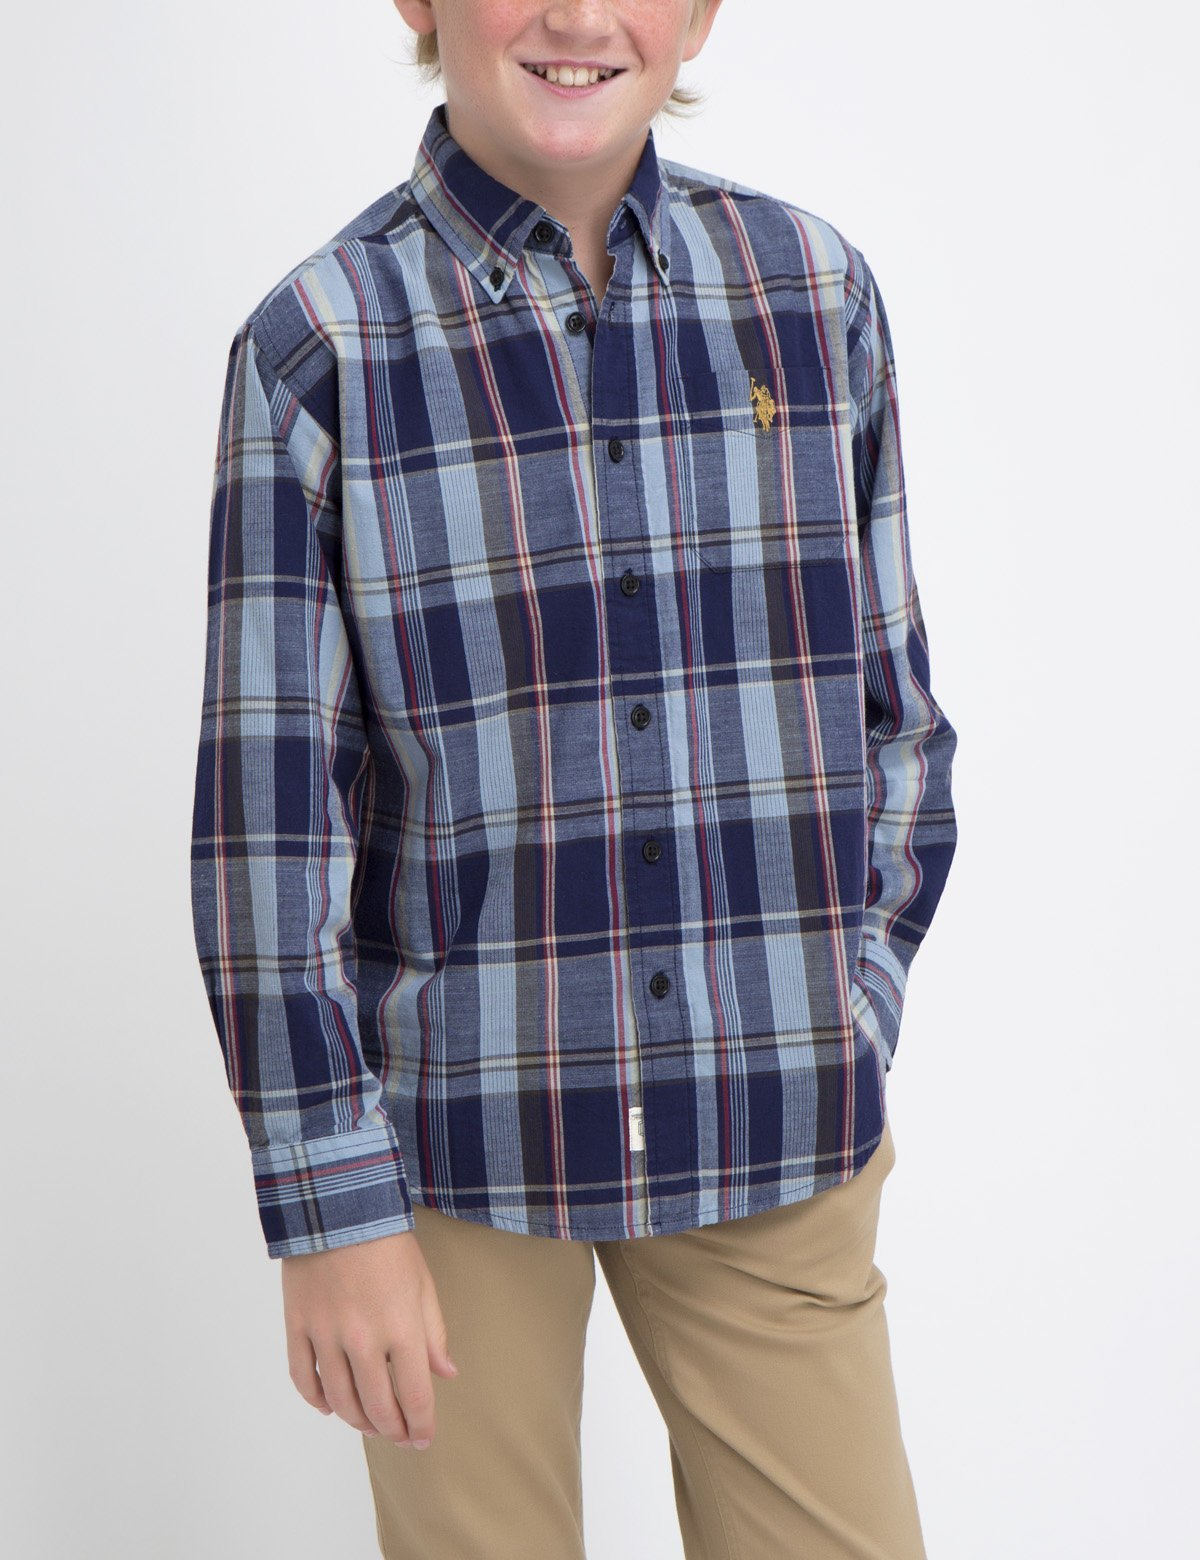 BOYS PLAID SHIRT